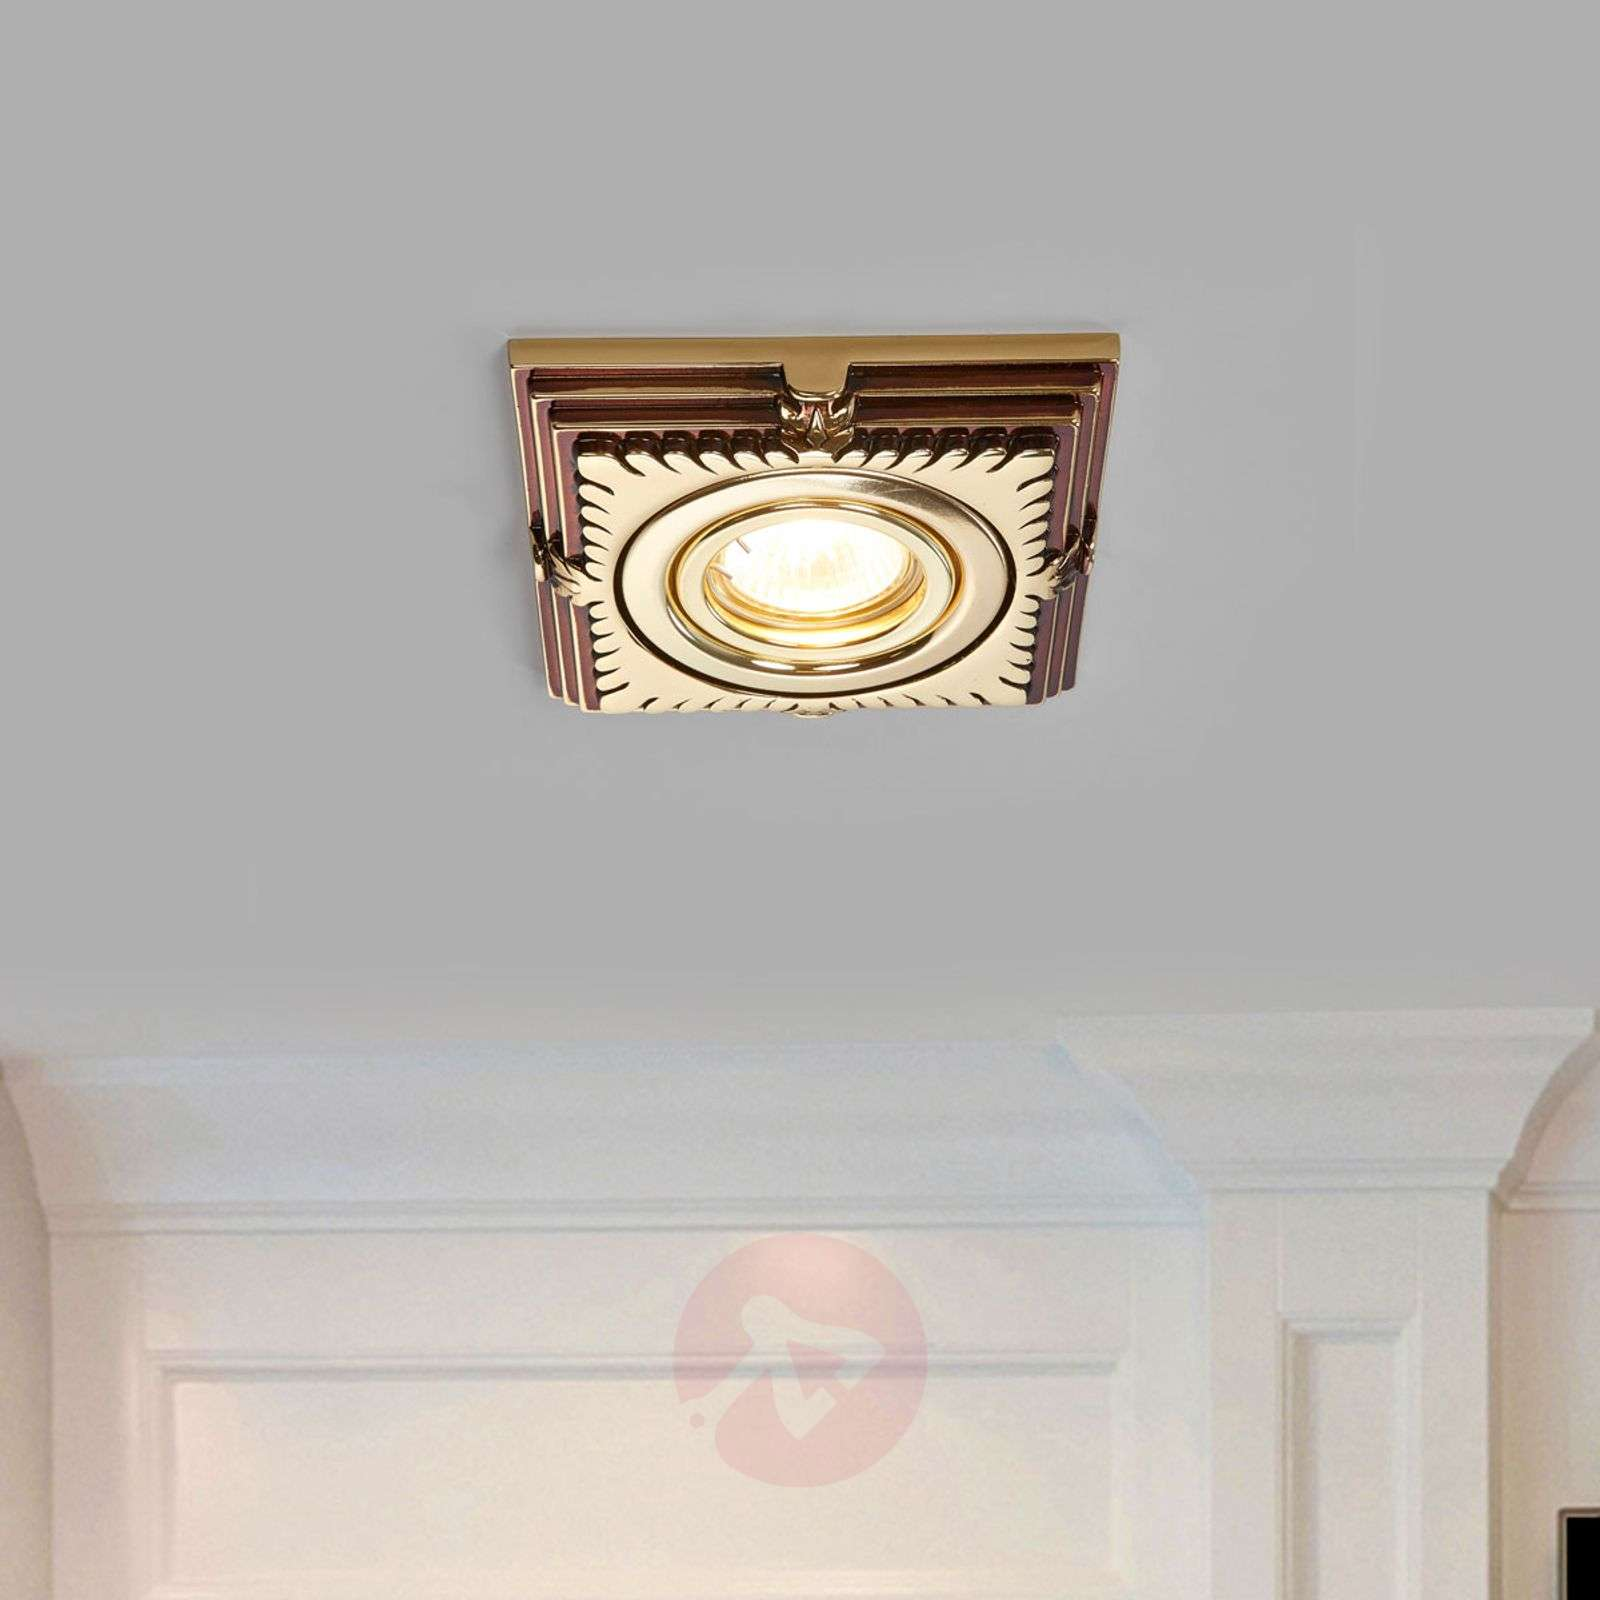 Square recessed light yago lights square recessed light yago 8023125 01 aloadofball